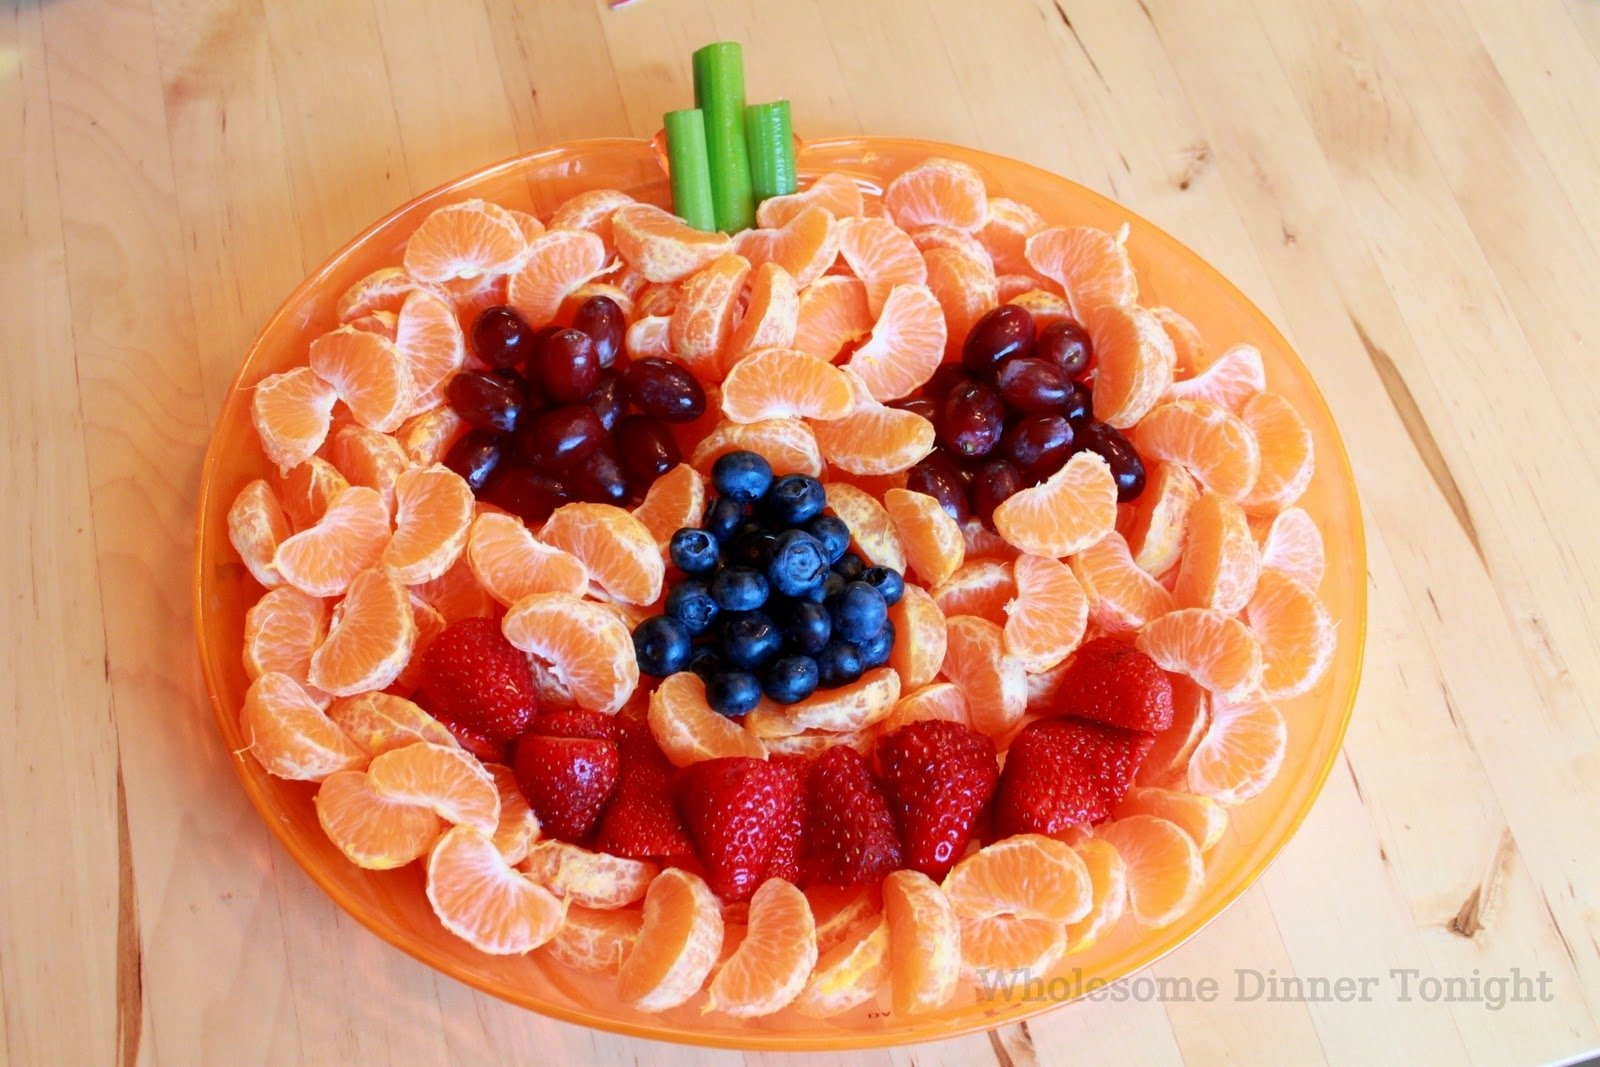 10 Most Popular Halloween Snack Ideas For Kids Party top 15 paleo halloween treats party food ideas 7 2021